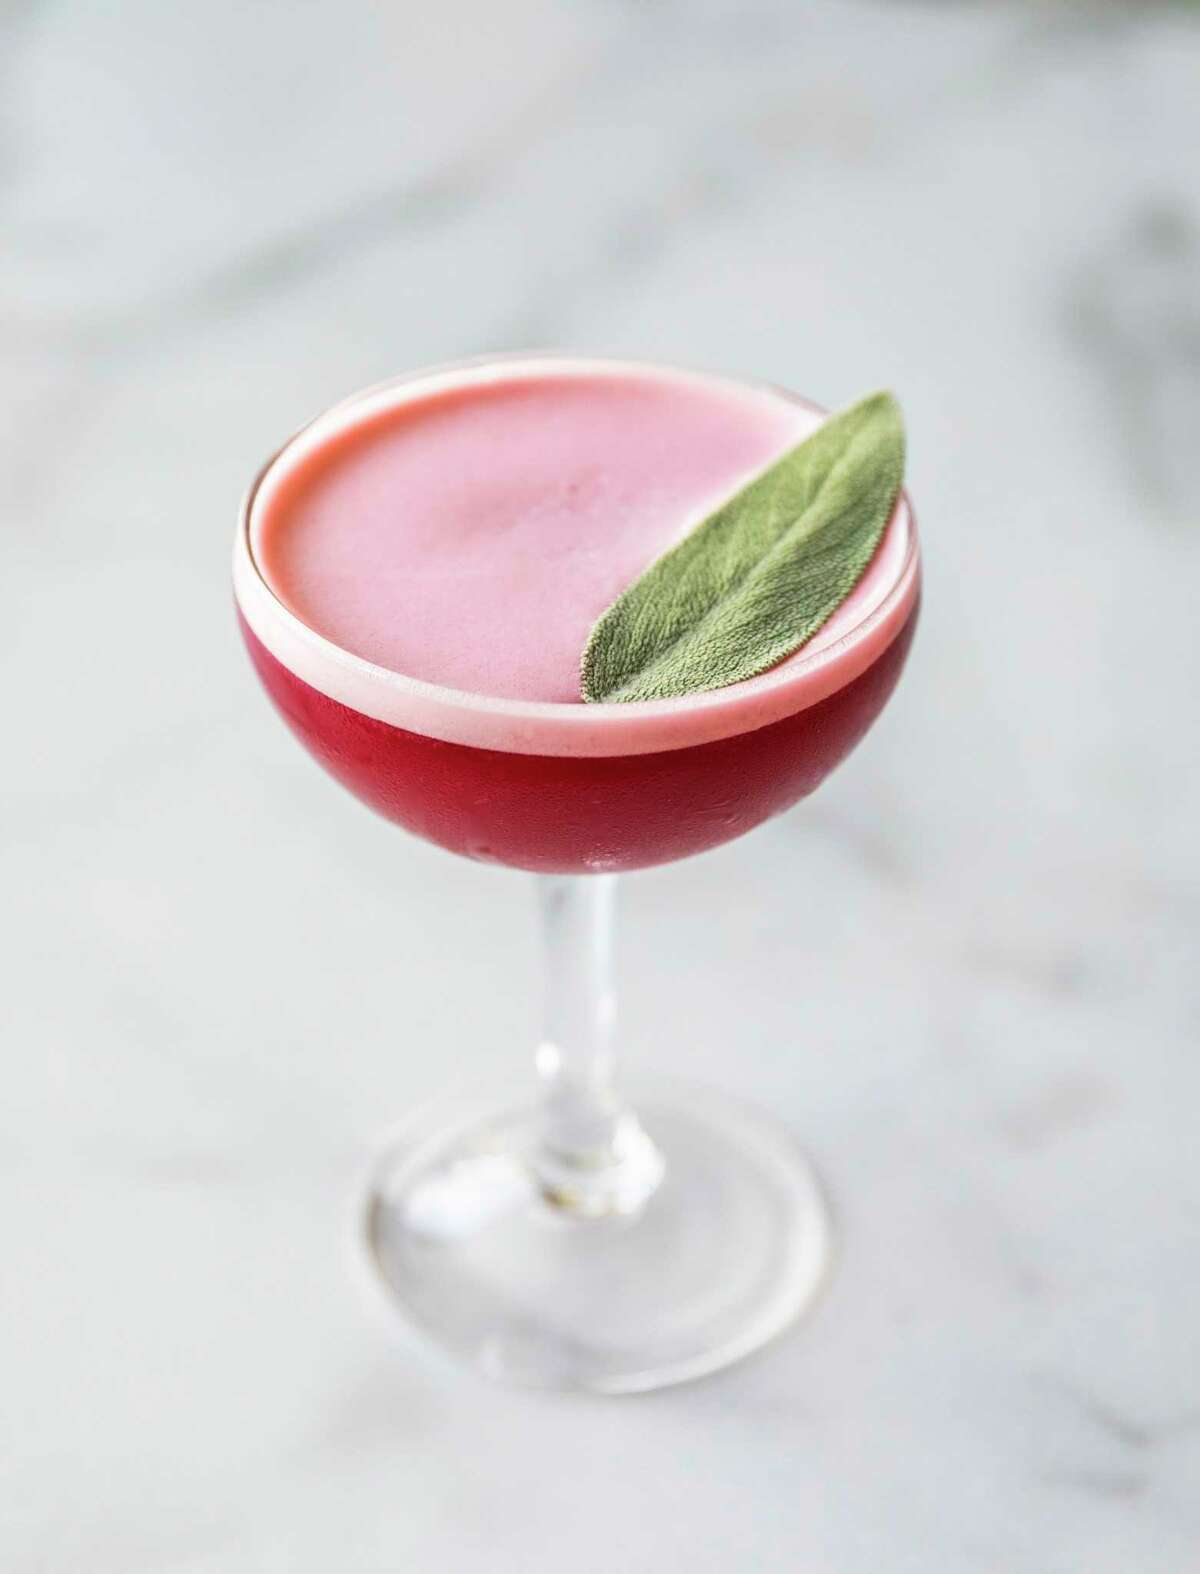 The Tighten Up is a holiday cocktail from Relish Restaurant & Bar made with cognac, Calvados, cranberry syrup and egg white, flavored with sage leaves.